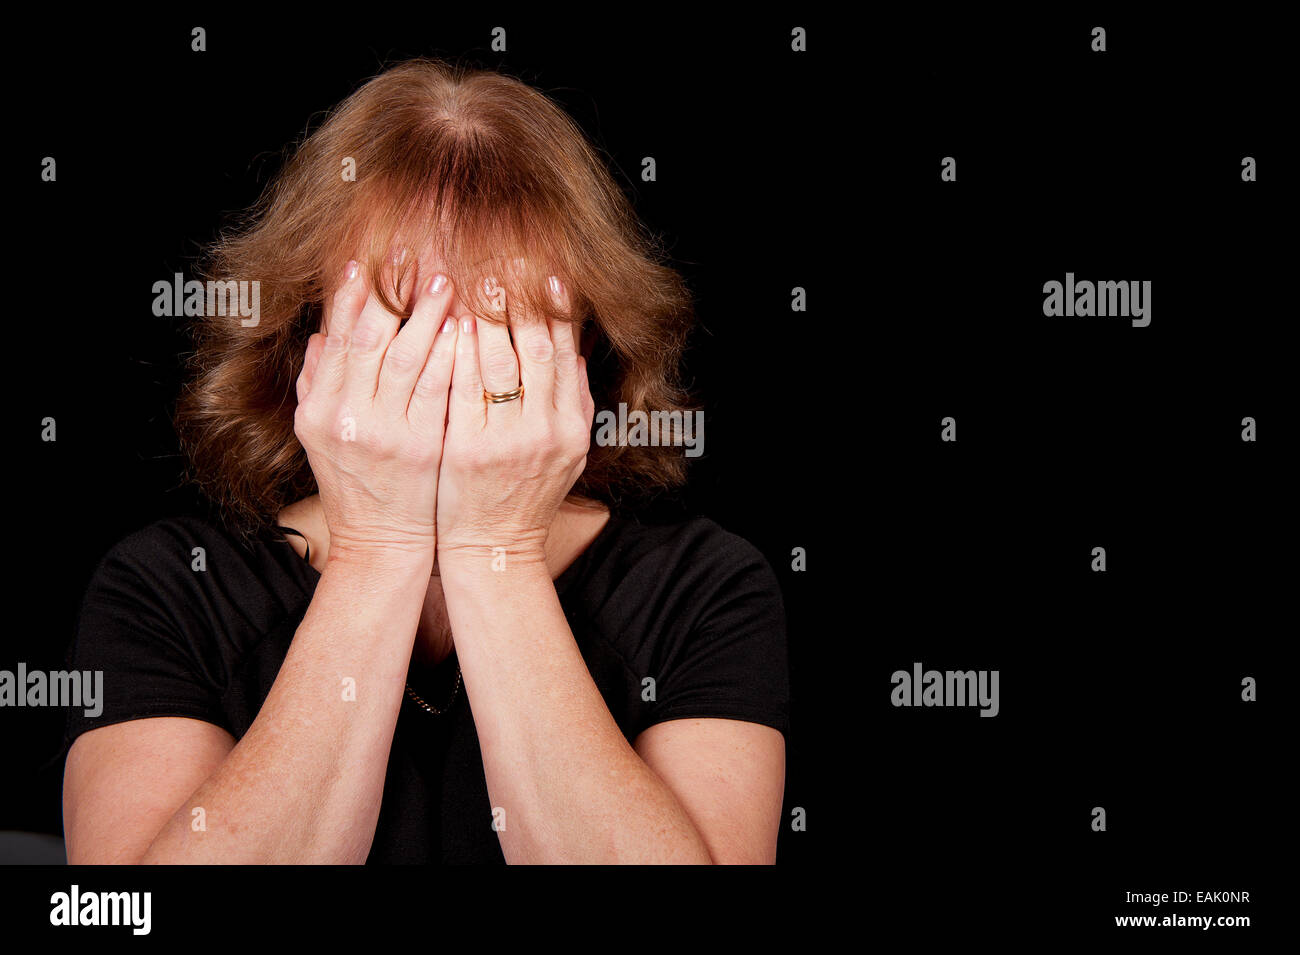 Middle aged woman covering her face with her hands, against a black background. - Stock Image